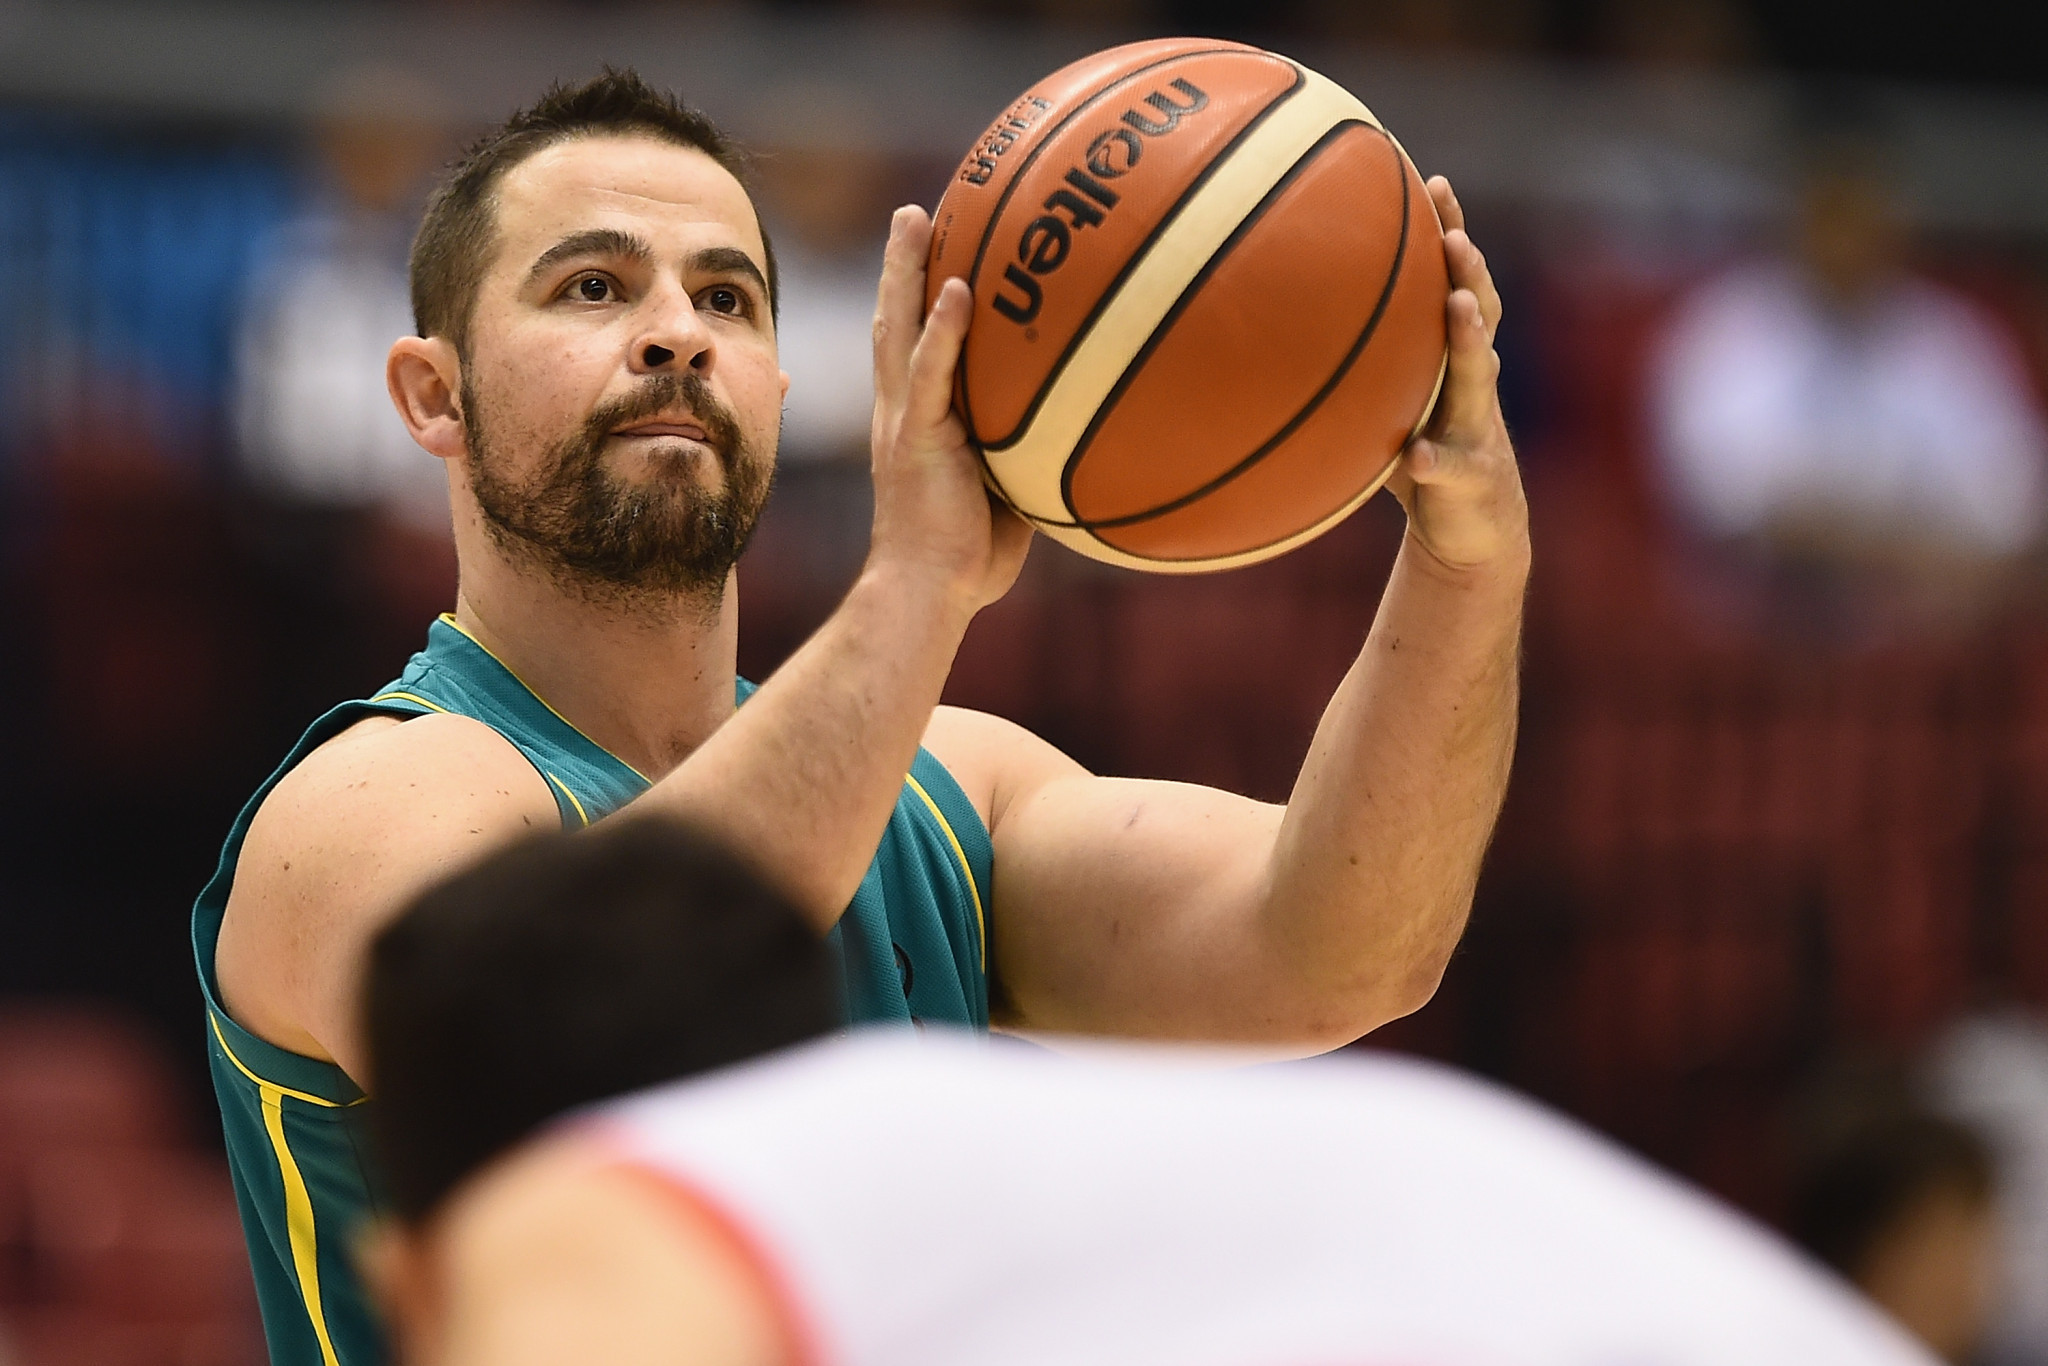 F1 technology puts Australian wheelchair basketballers in driving seat for Paralympics